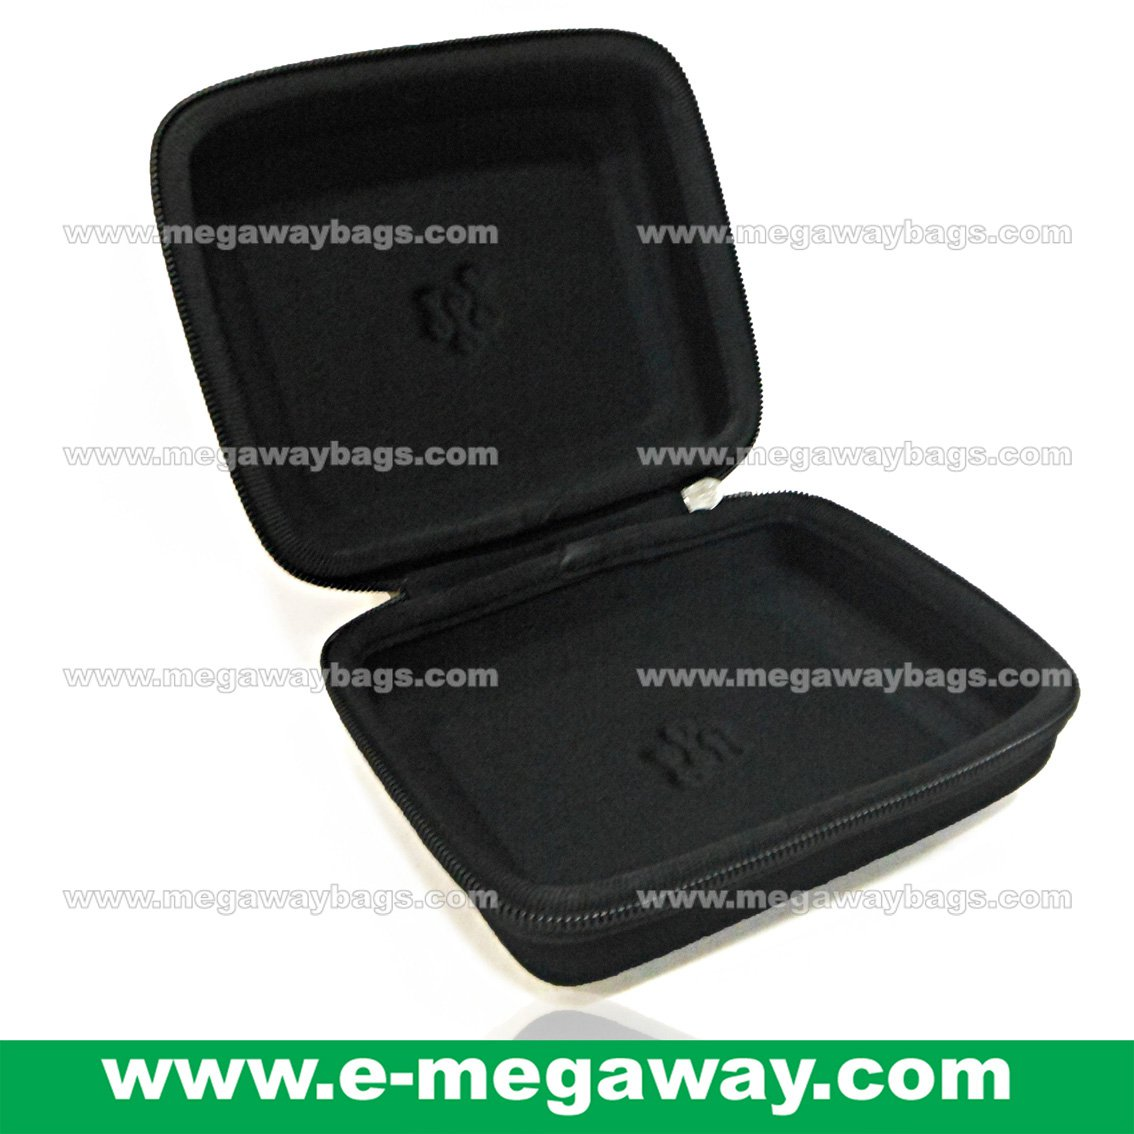 EVA Emboss Foam Clam Shell Bag Case Boxes Device Zip-Up Hard Cover MegawayBags #CC-1061